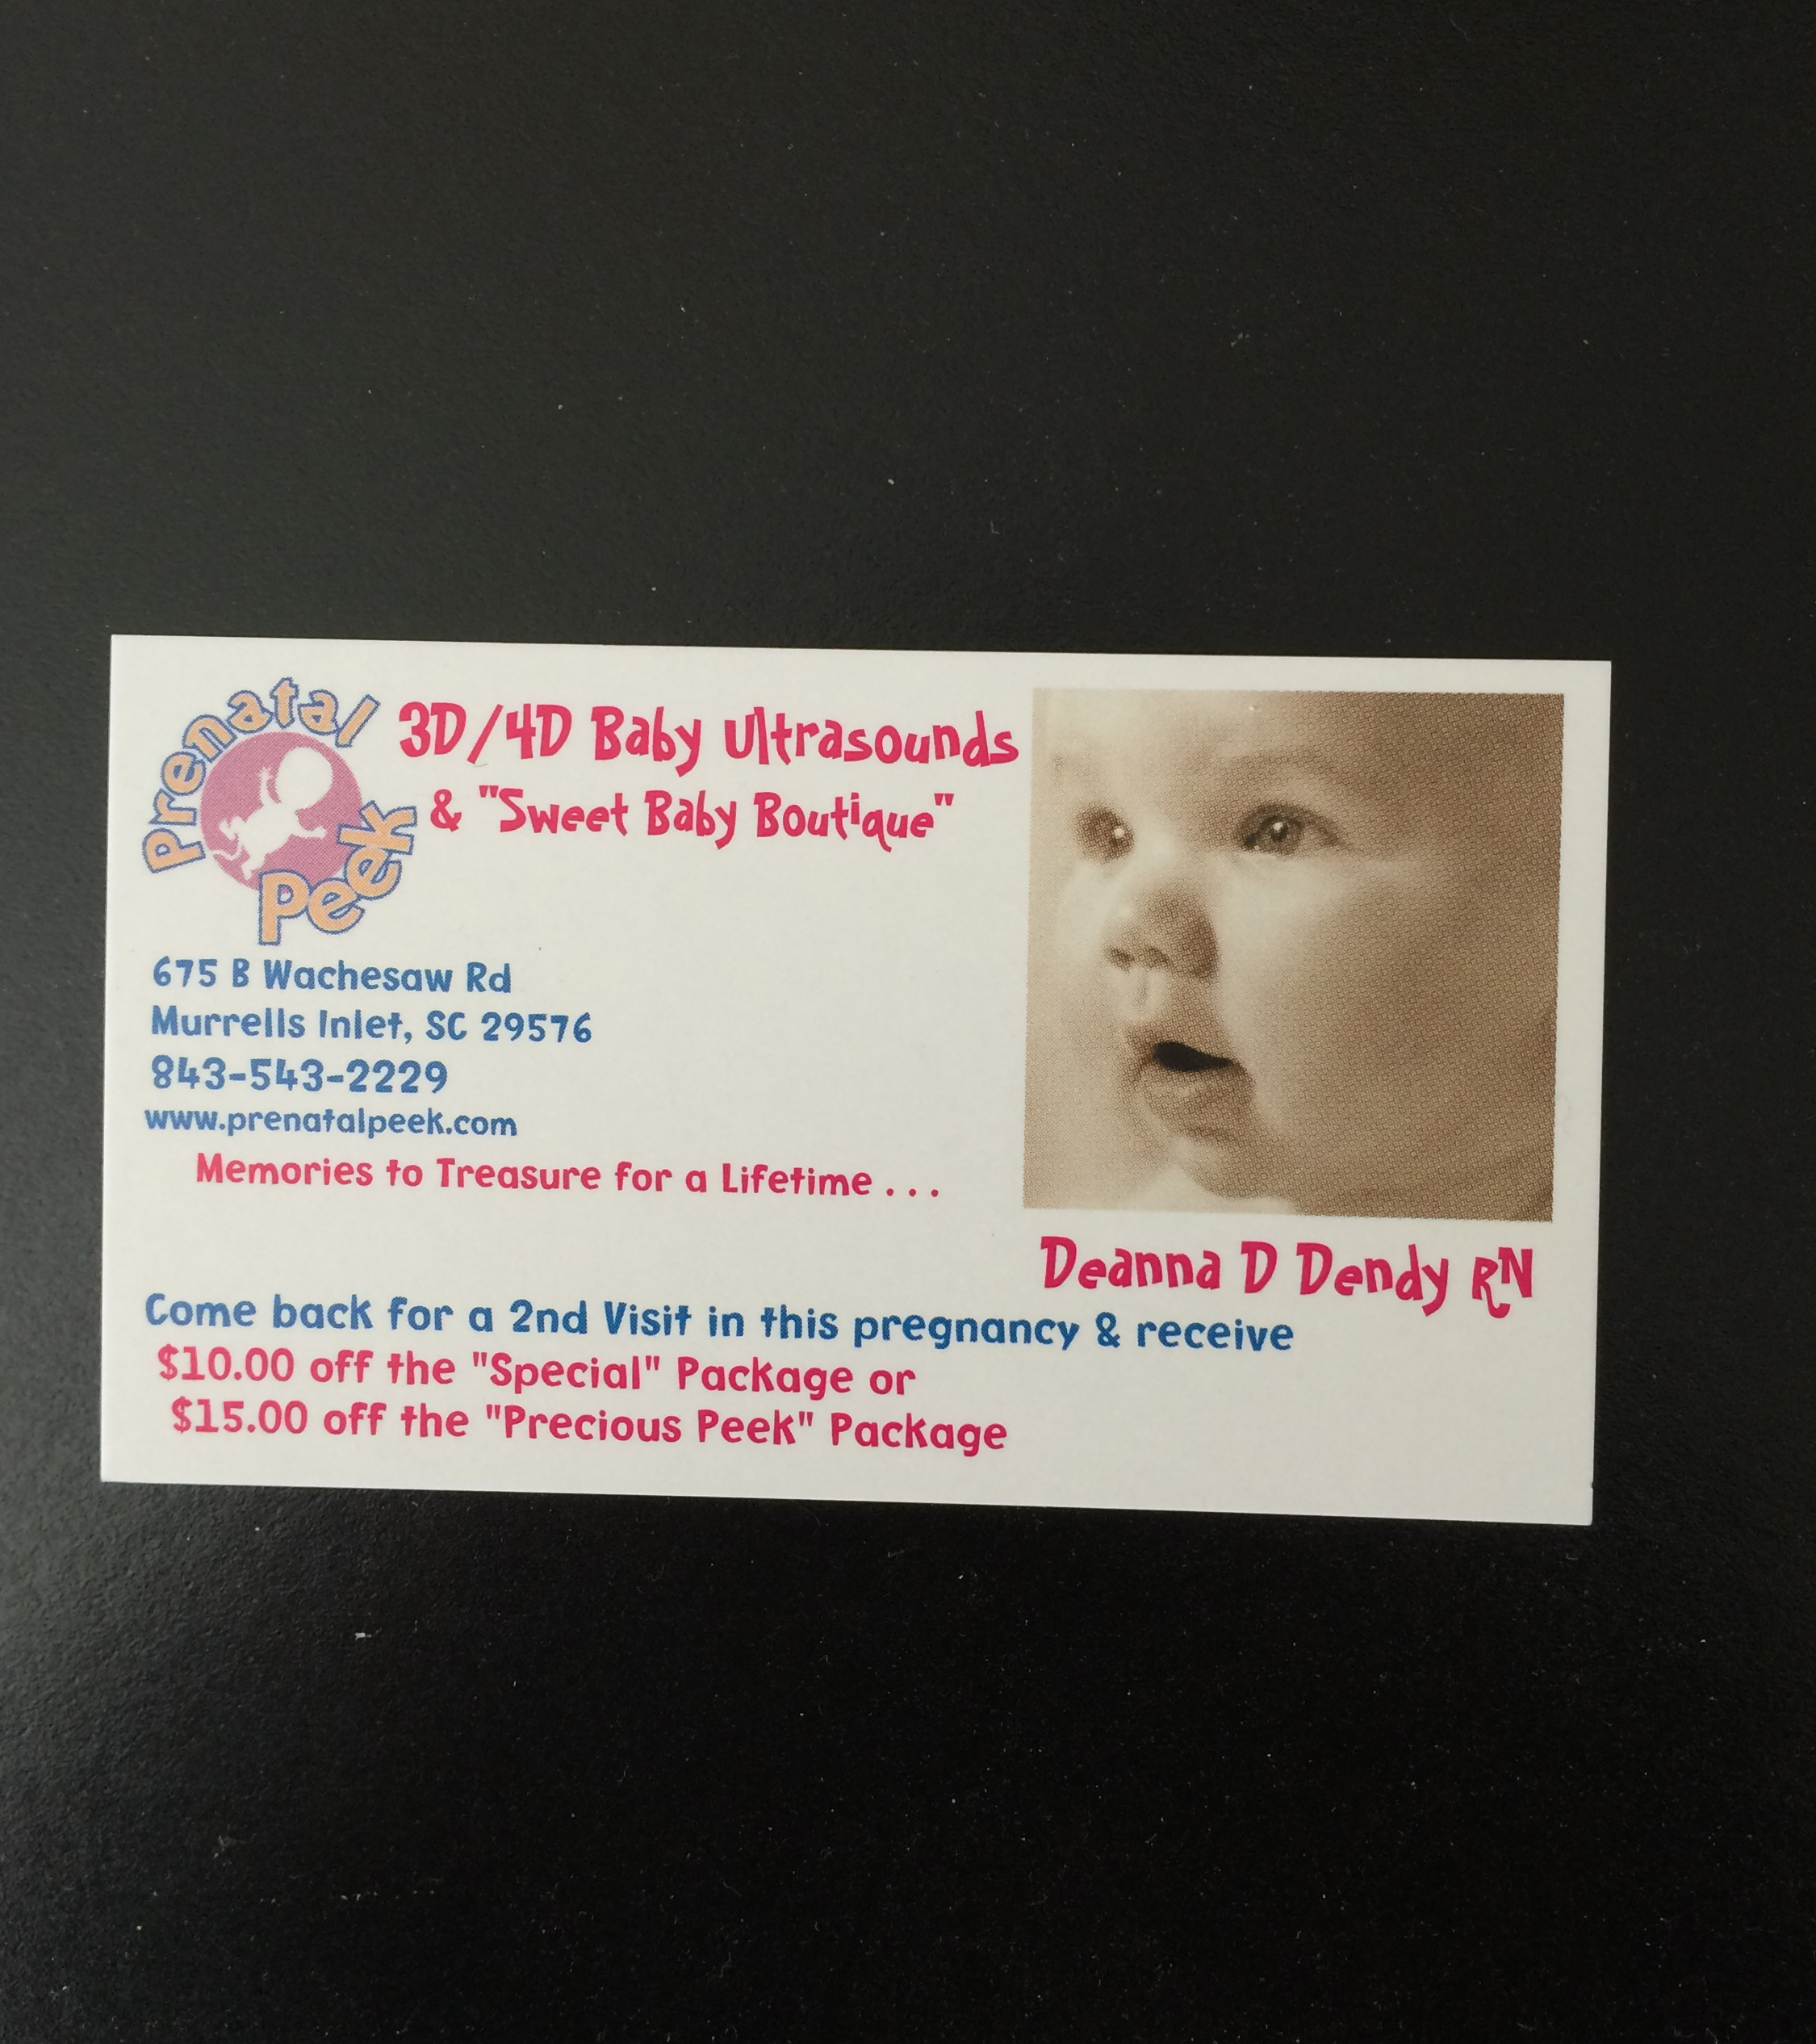 This is the business card of Prenatal Peek, the place we went to yesterday for a high quality ultrasound.